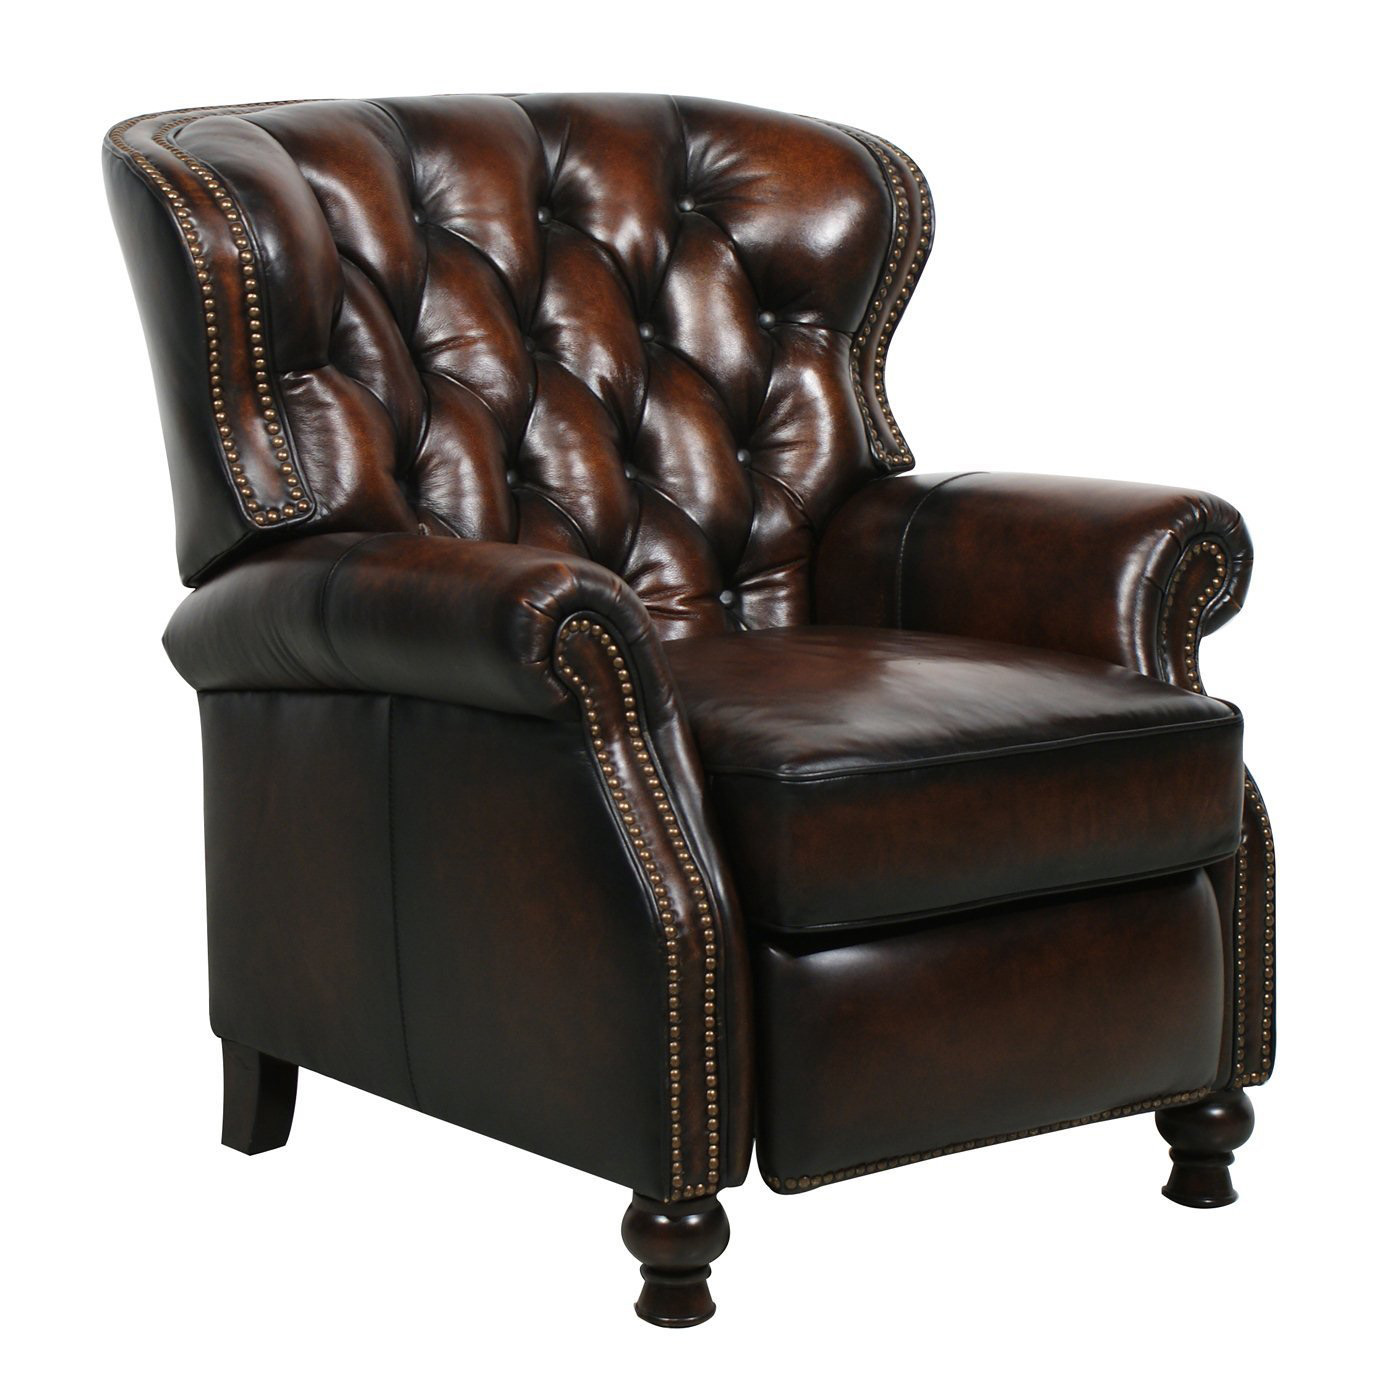 Chair Furniture: Barcalounger Presidential II Leather Recliner Chair